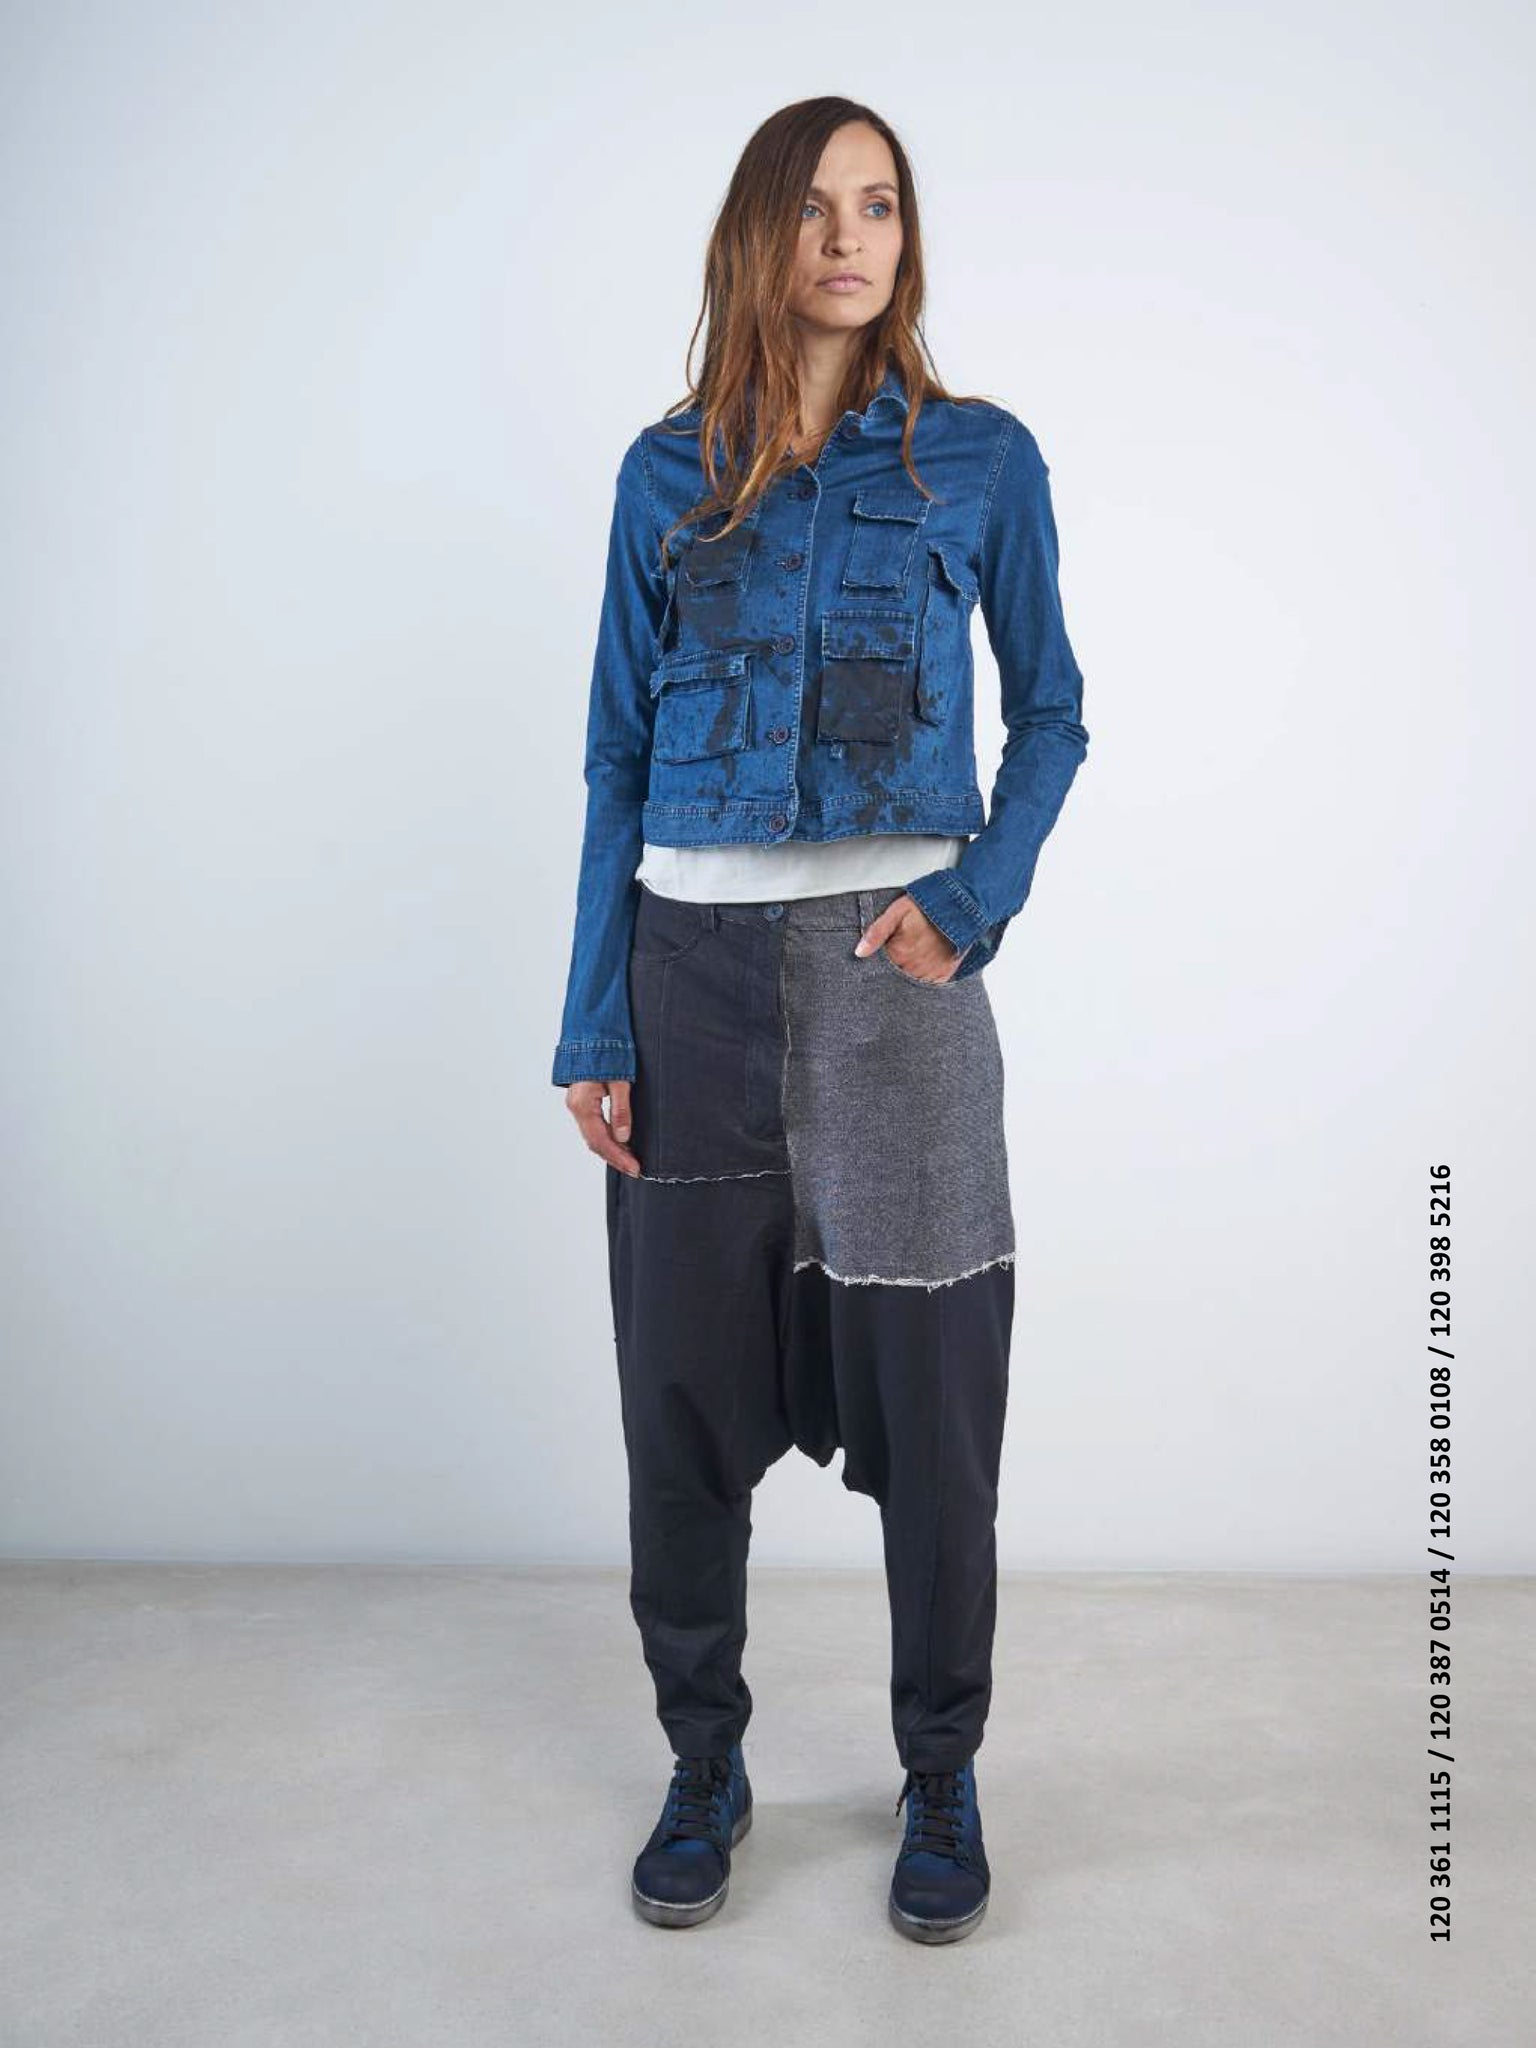 Rundholz Black Label Denim Look Patchwork Pants, Trousers, Rundholz, Blue Women - Blue Women's Clothing